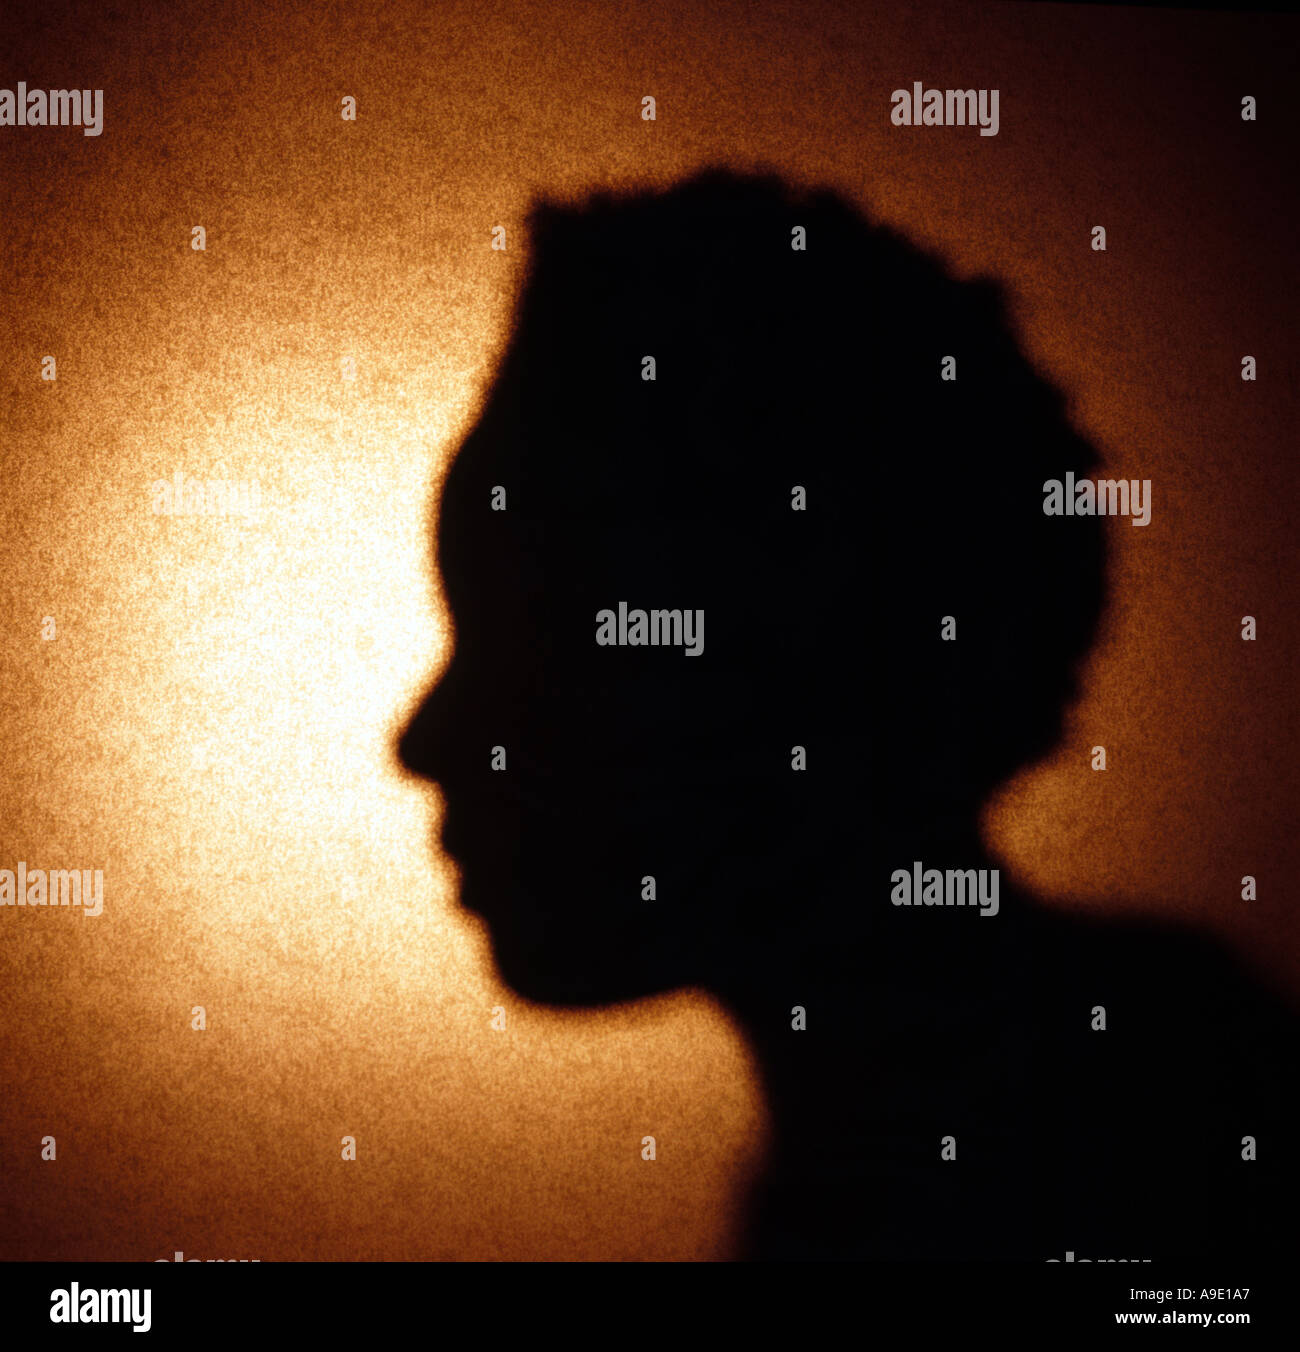 Woman African American silhouette - Stock Image